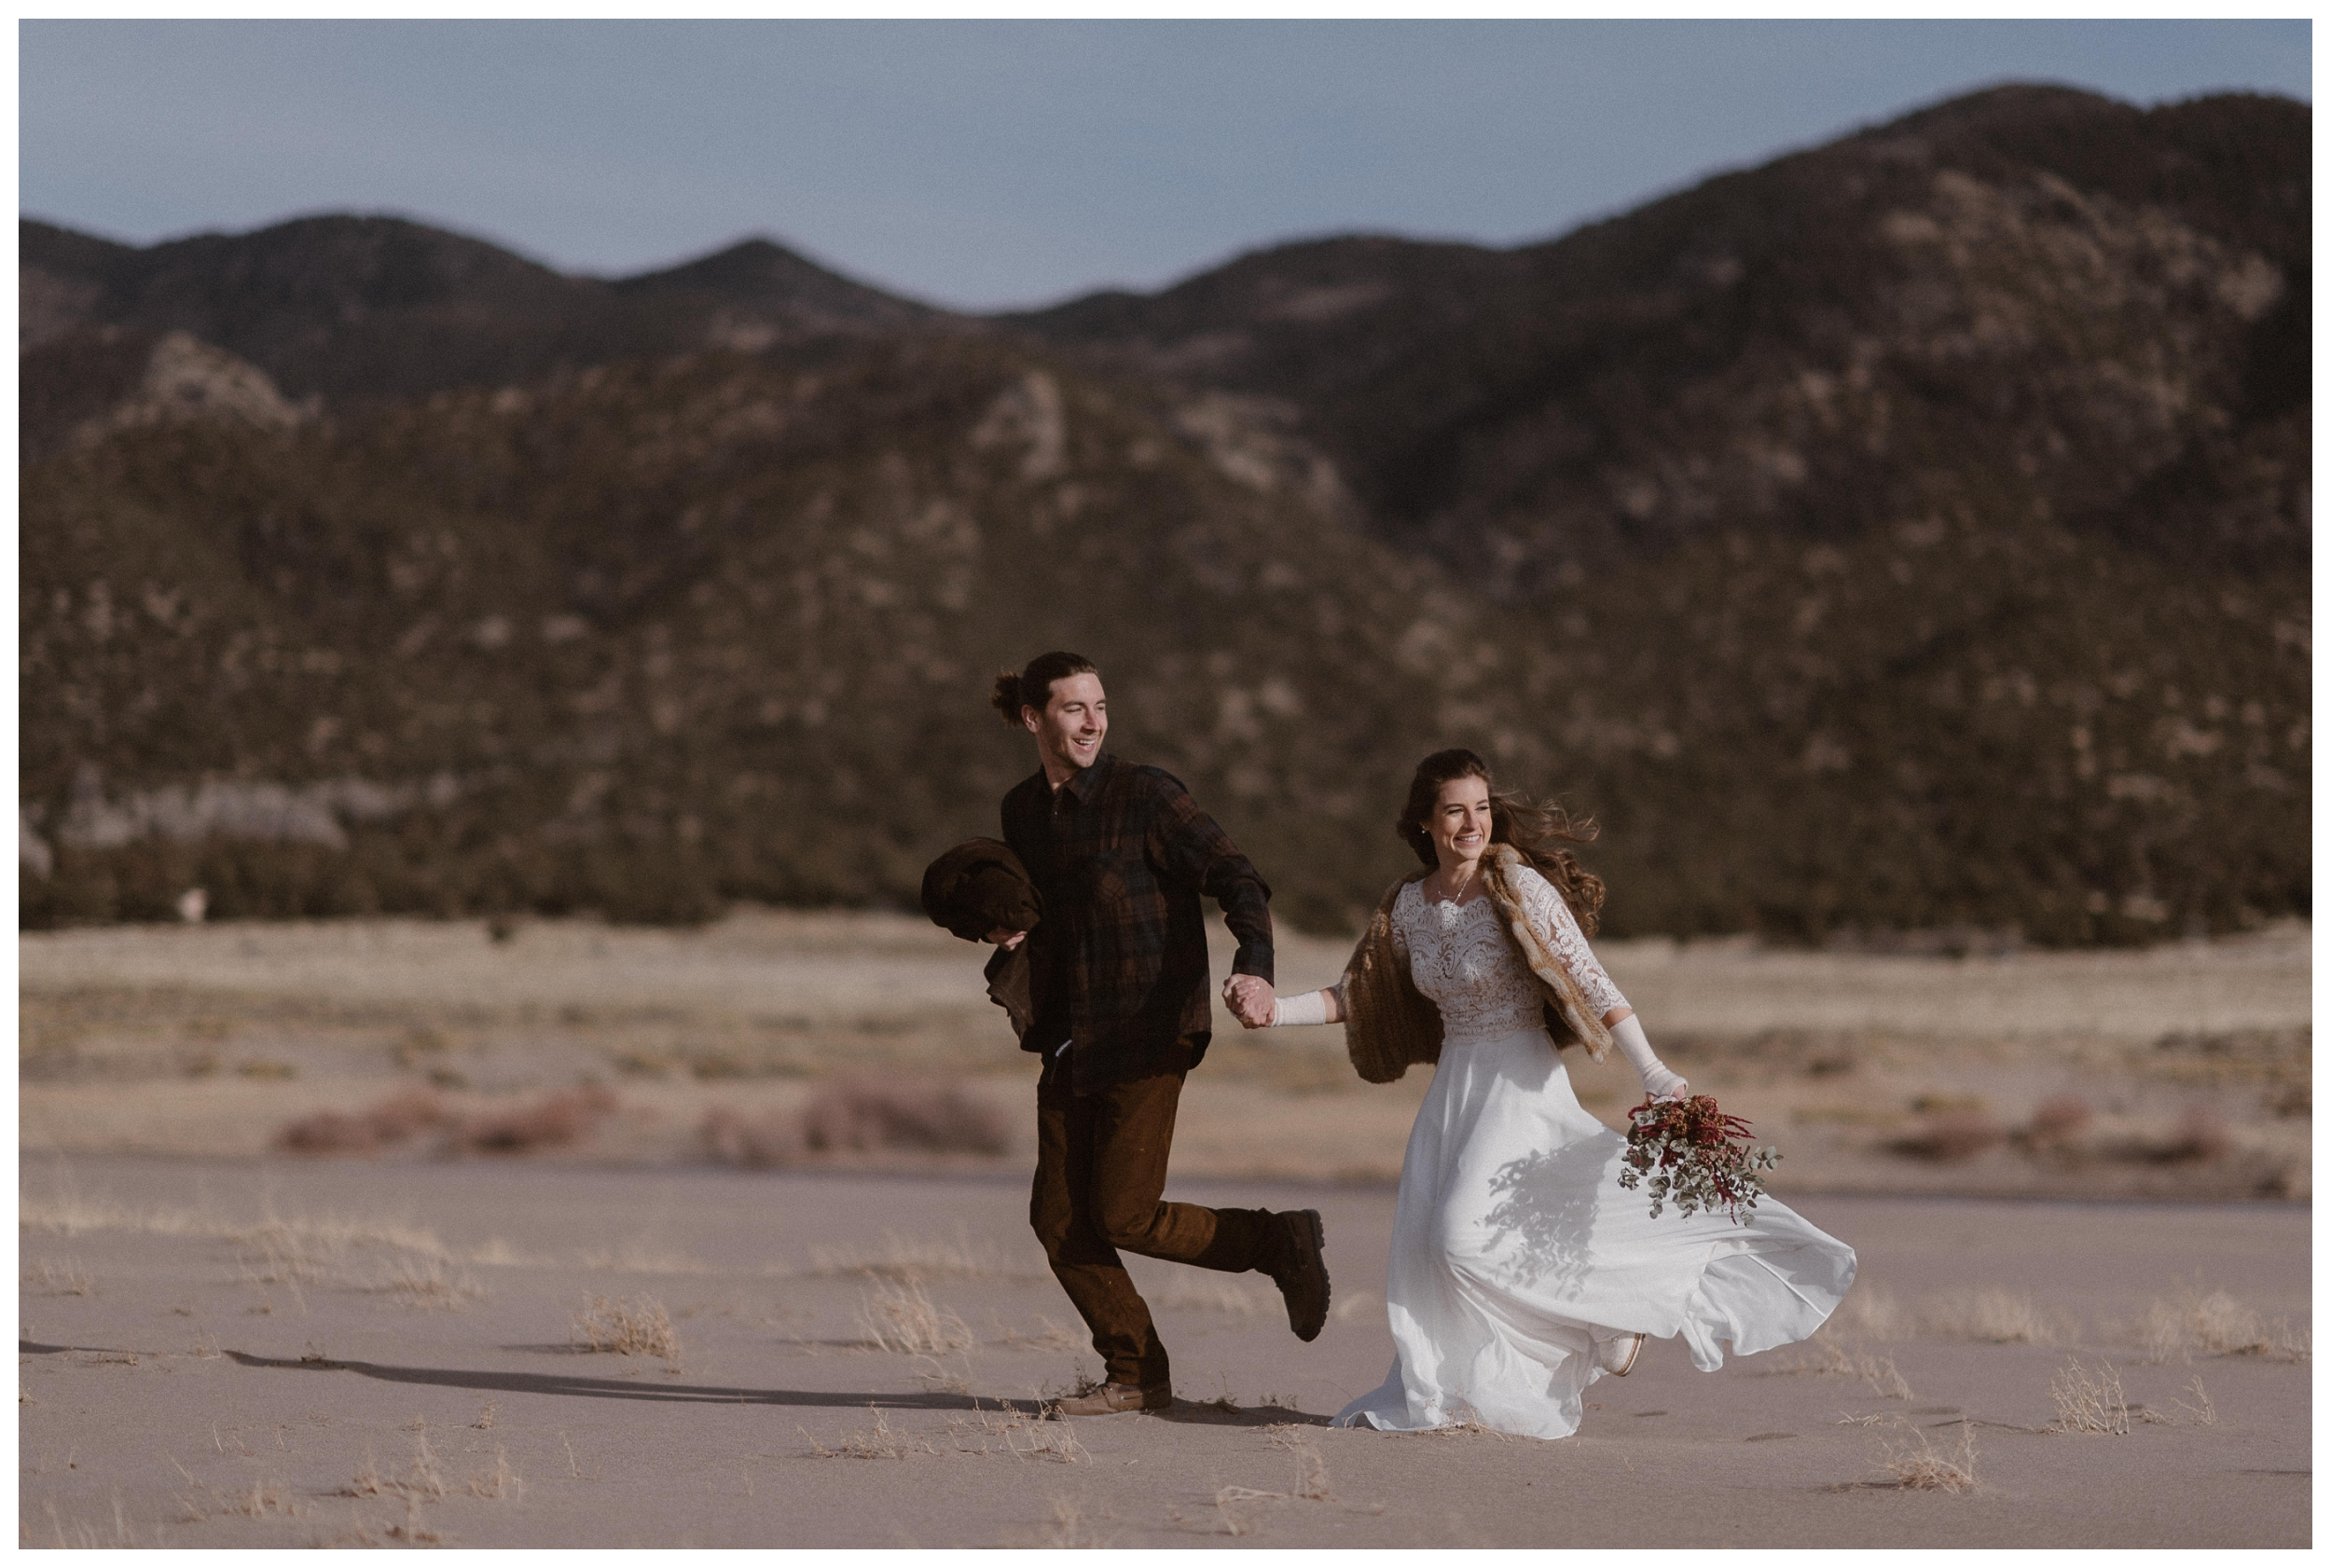 Olivia and Justin run through the Great Sand Dunes National Park for their winter adventure elopement.